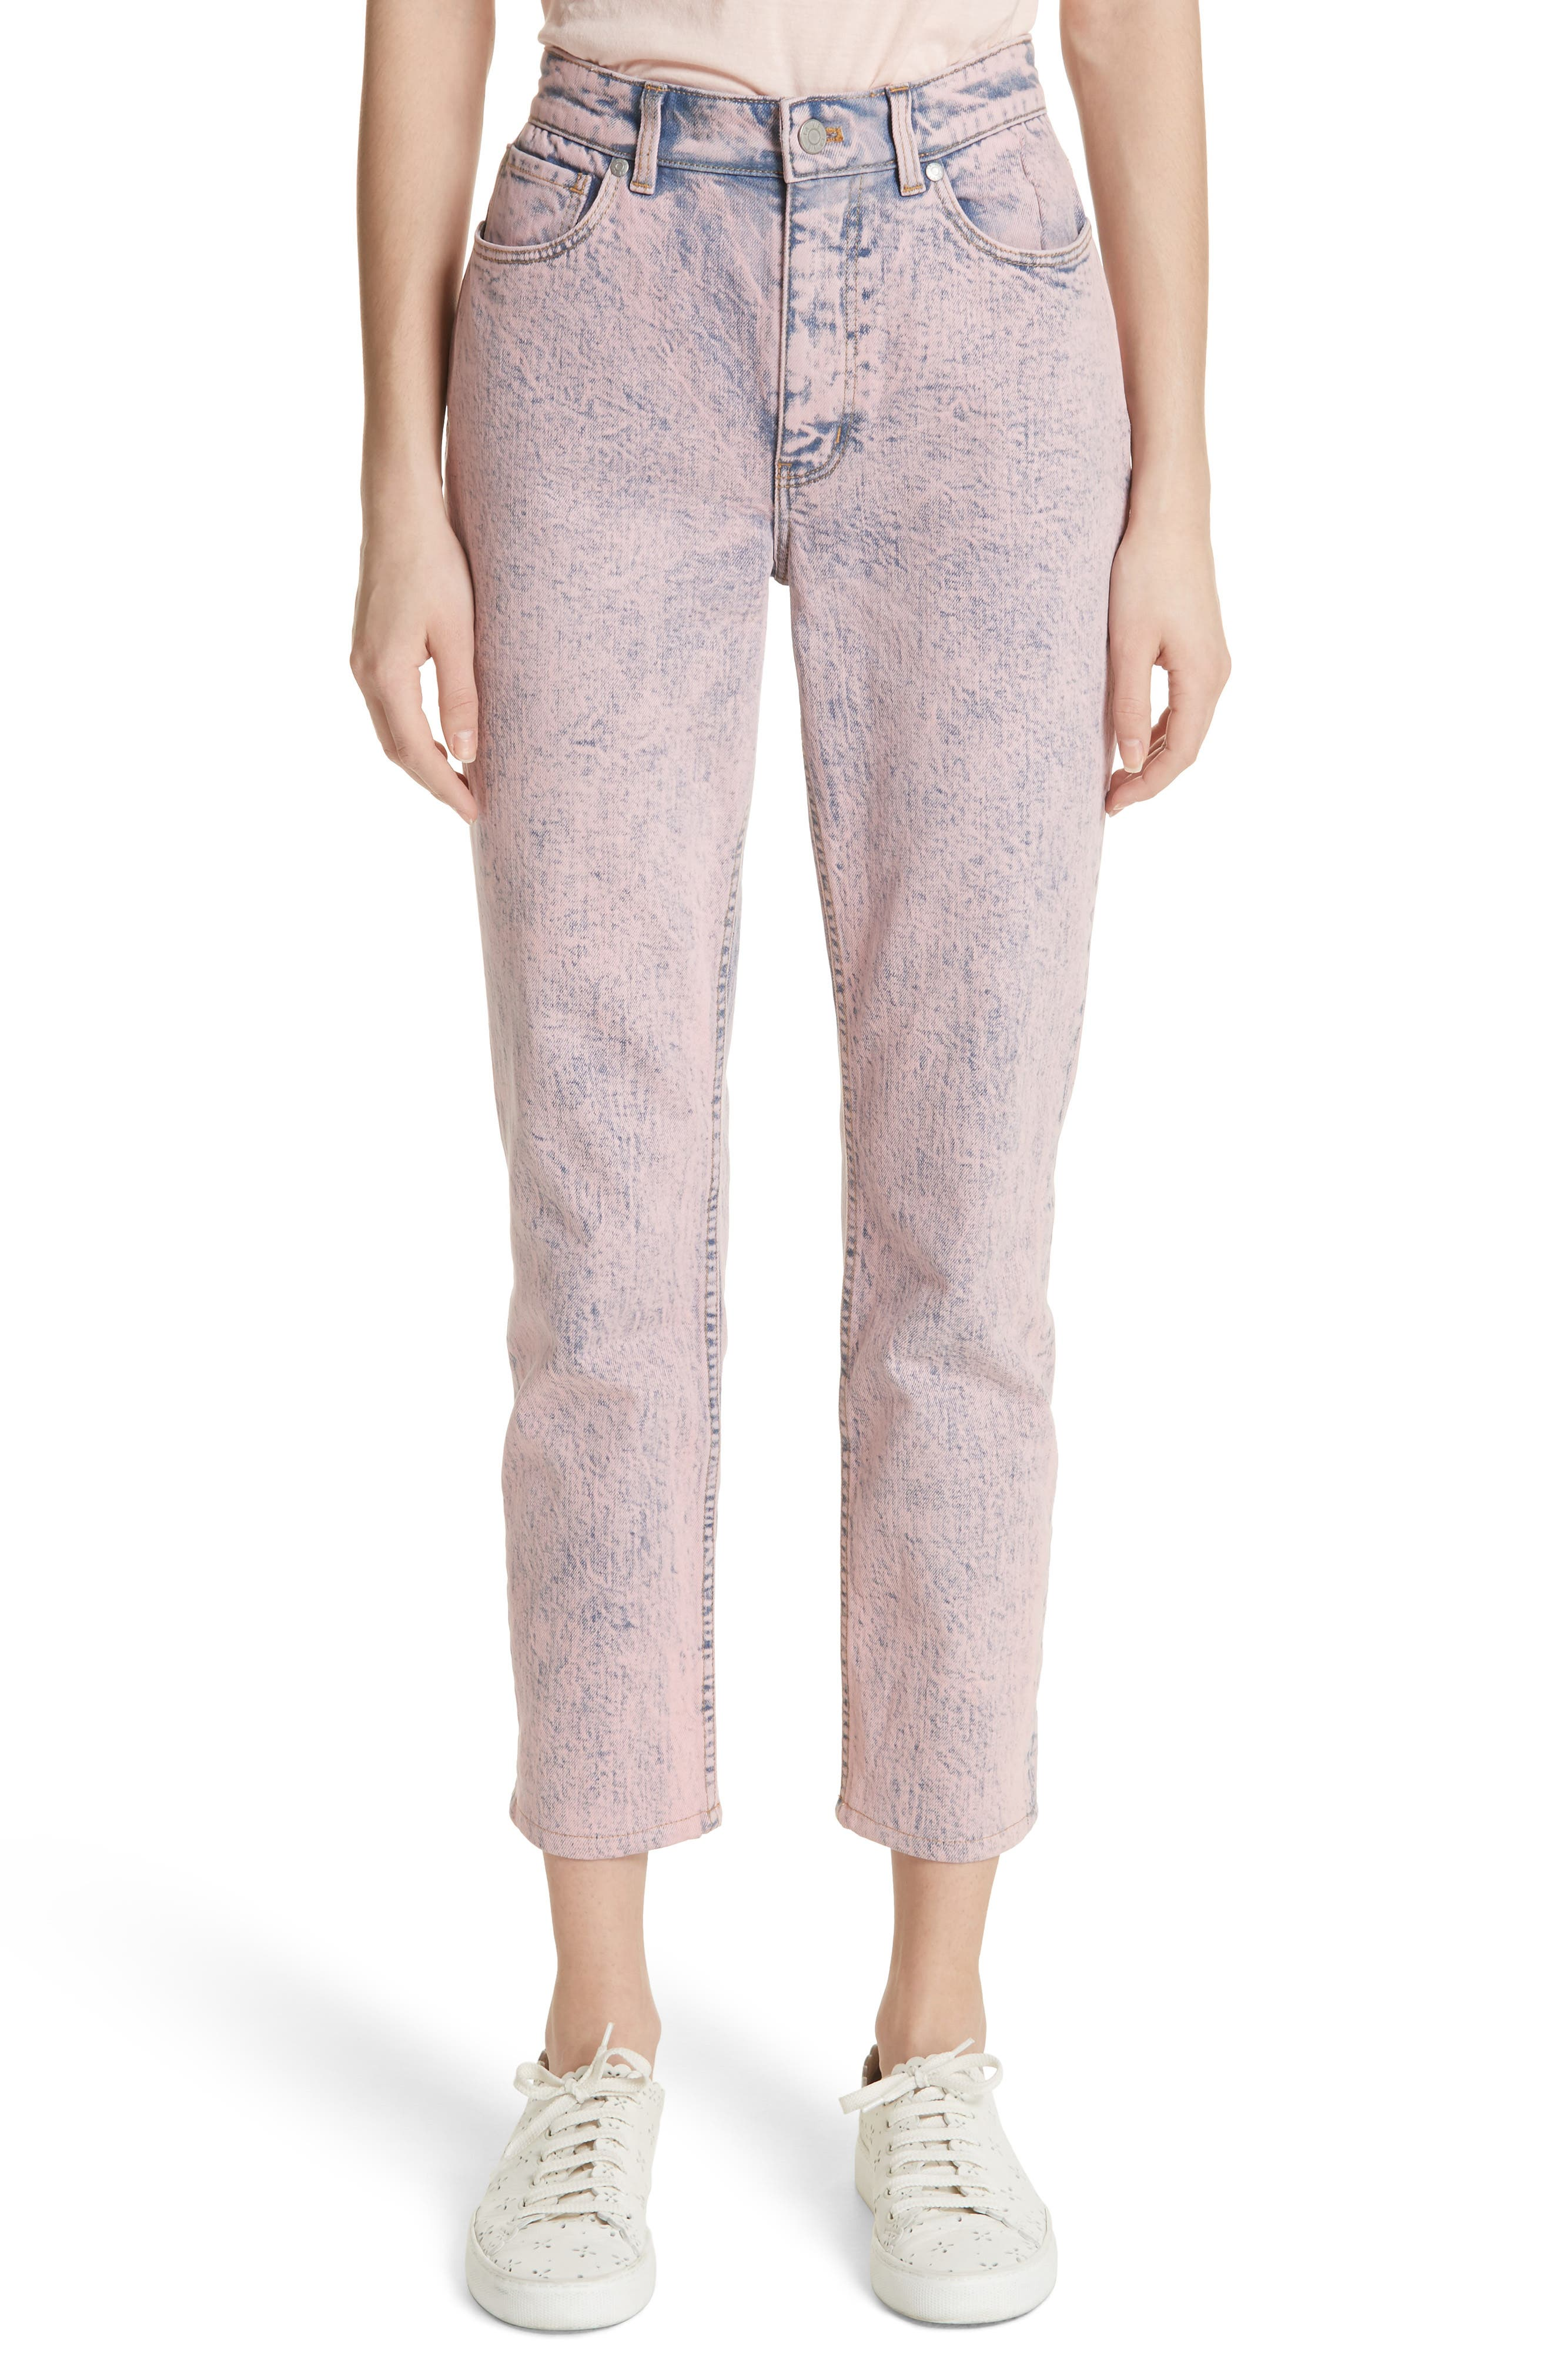 Ines Acid Wash Crop Jeans,                             Main thumbnail 1, color,                             Pink Overdyed Acid Wash